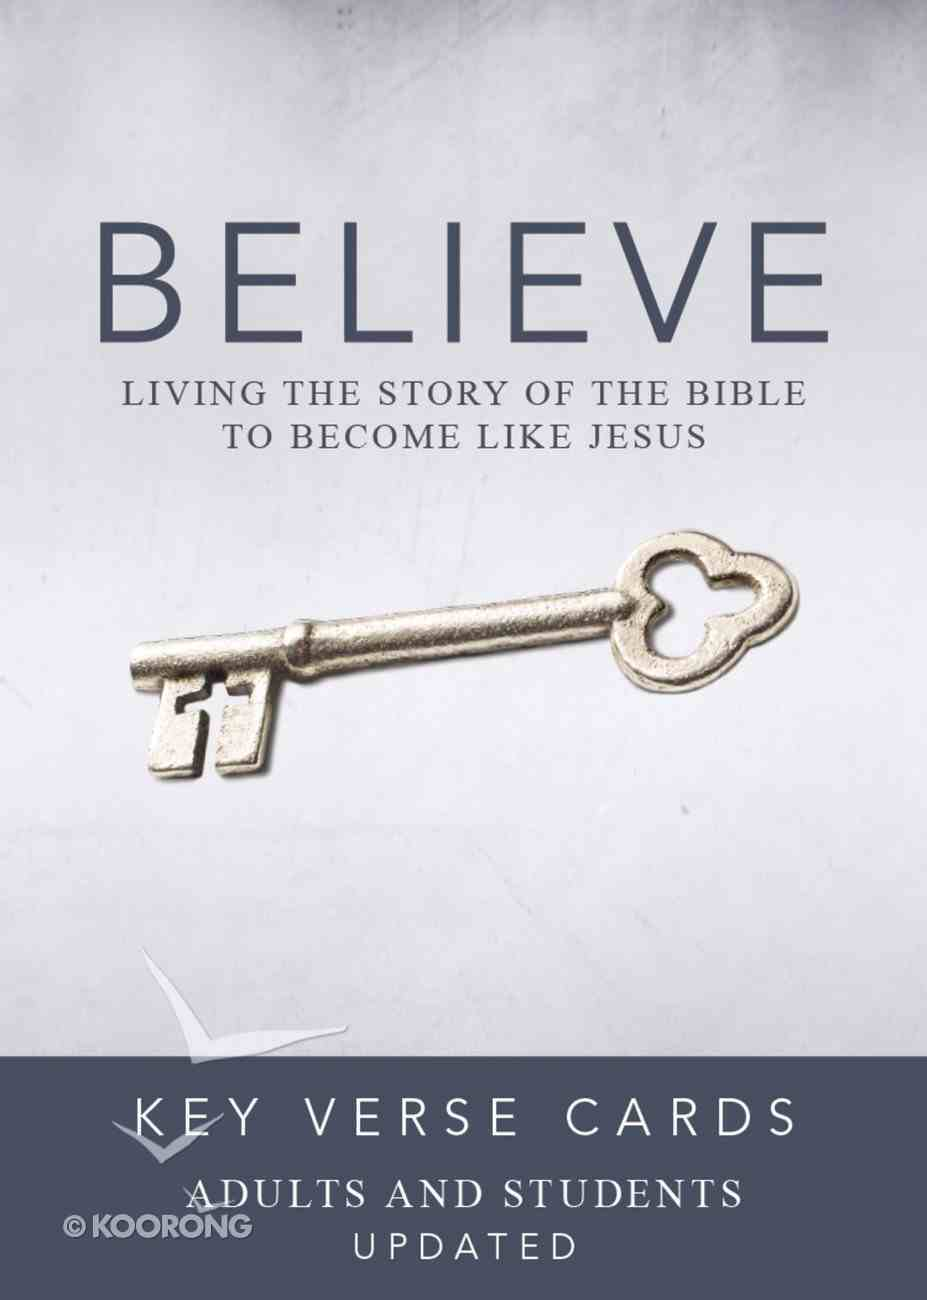 Believe Key Verse Cards: Adult/Student Cards